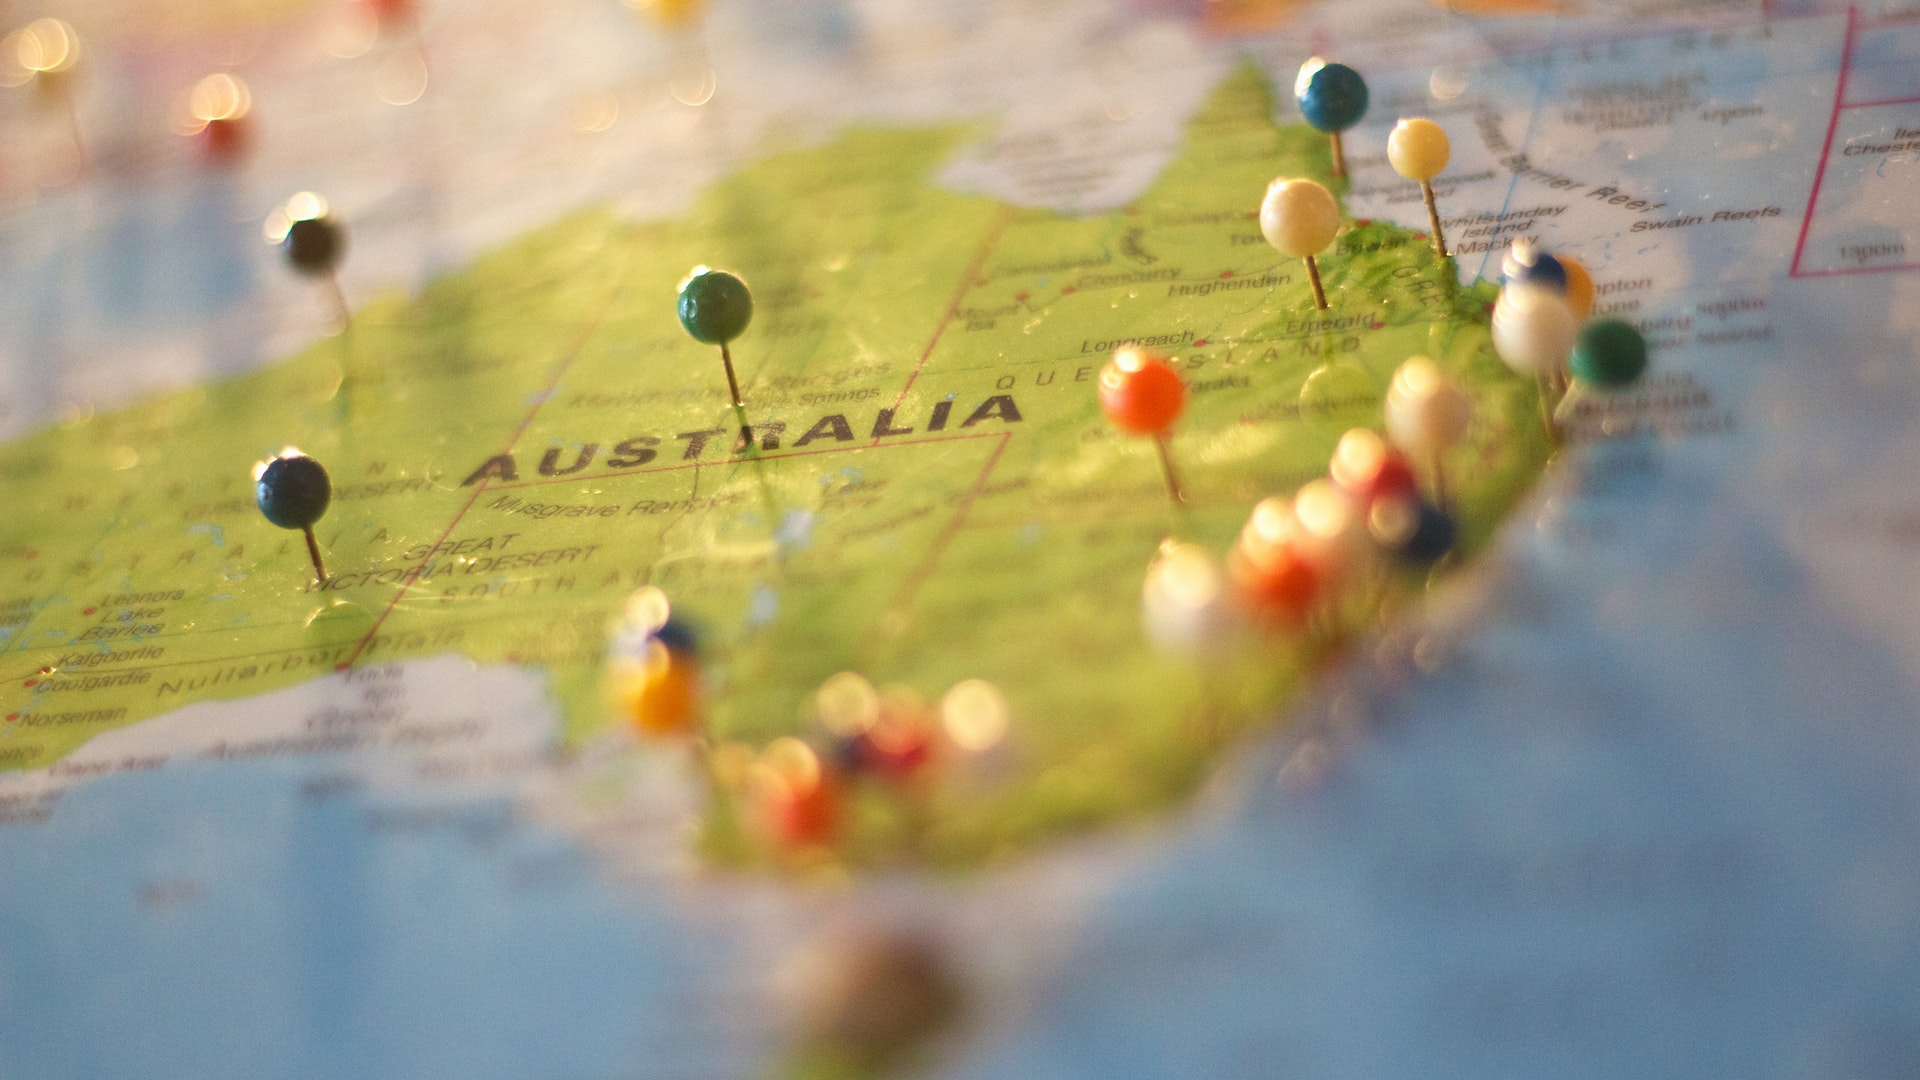 More Than Half of Australians Identify as Christians